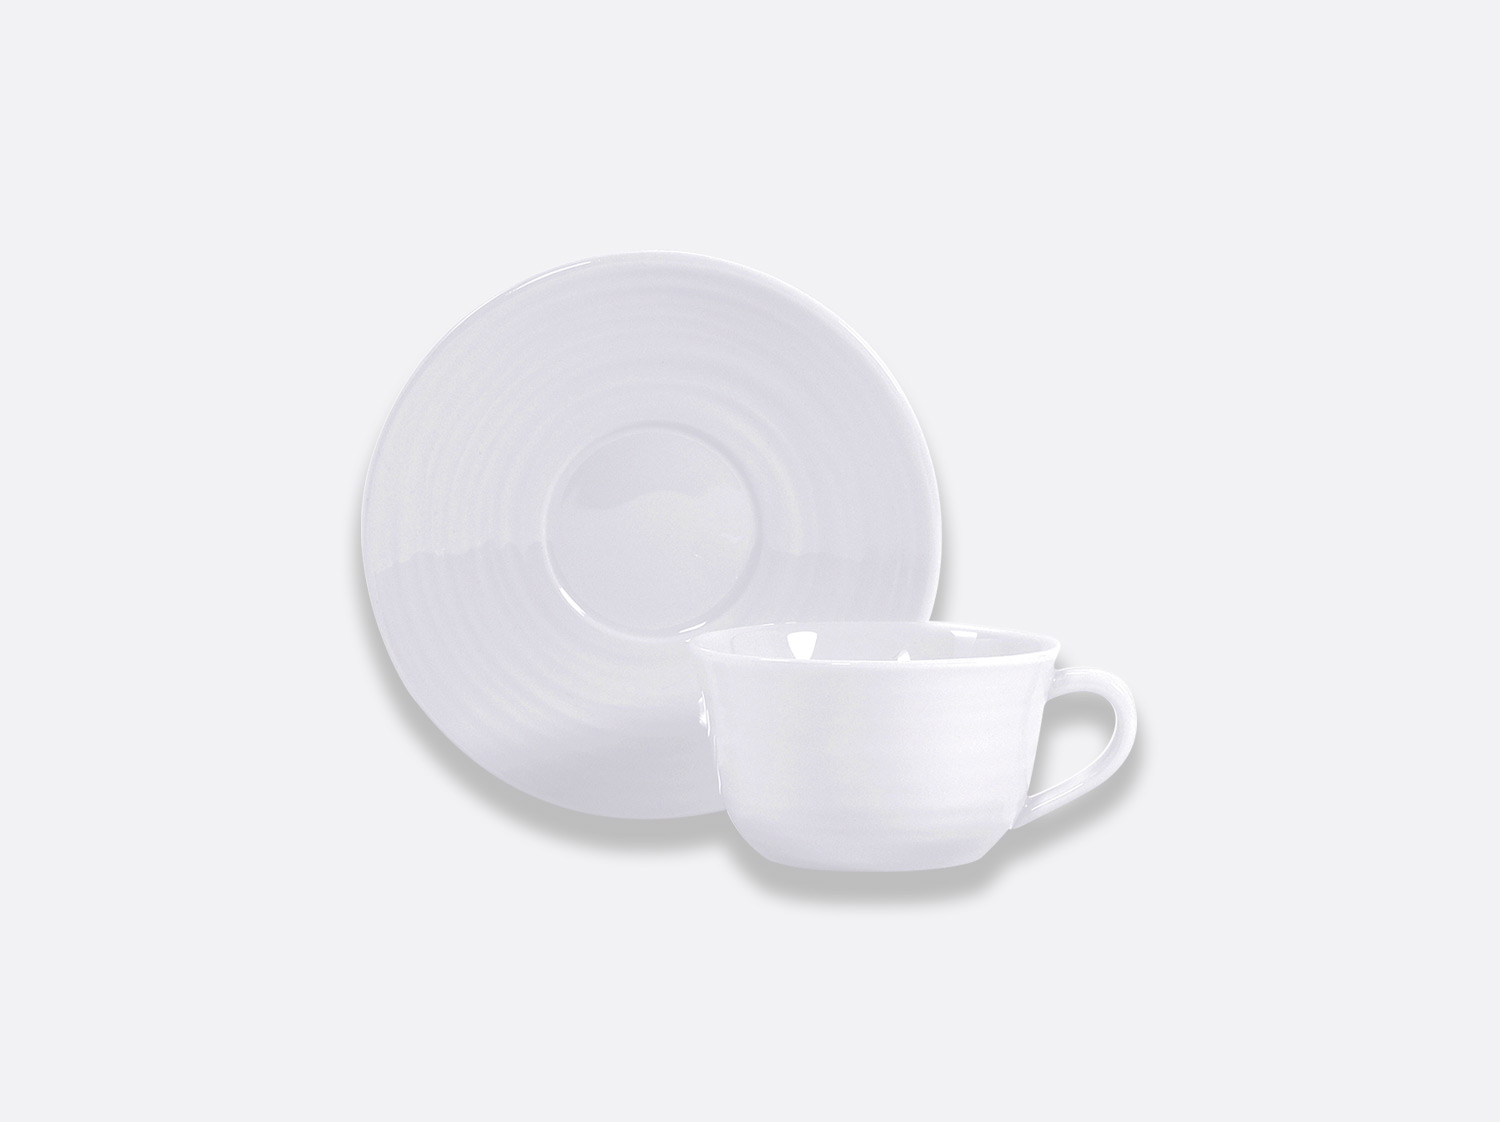 Tasse et soucoupe à thé 20 cl en porcelaine de la collection Origine Bernardaud